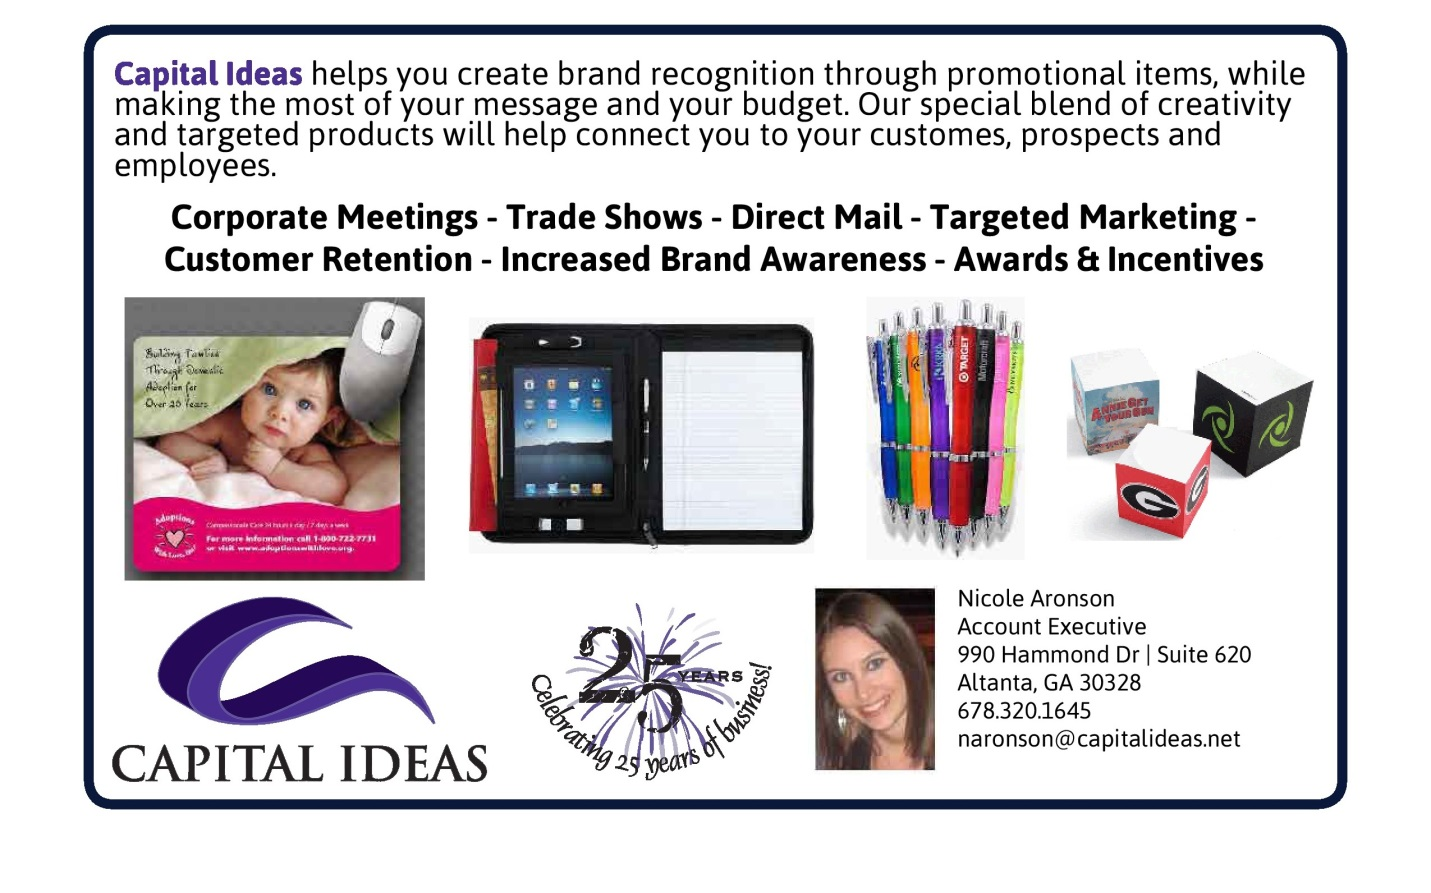 Capital Ideas - Promotional & Marketing Items